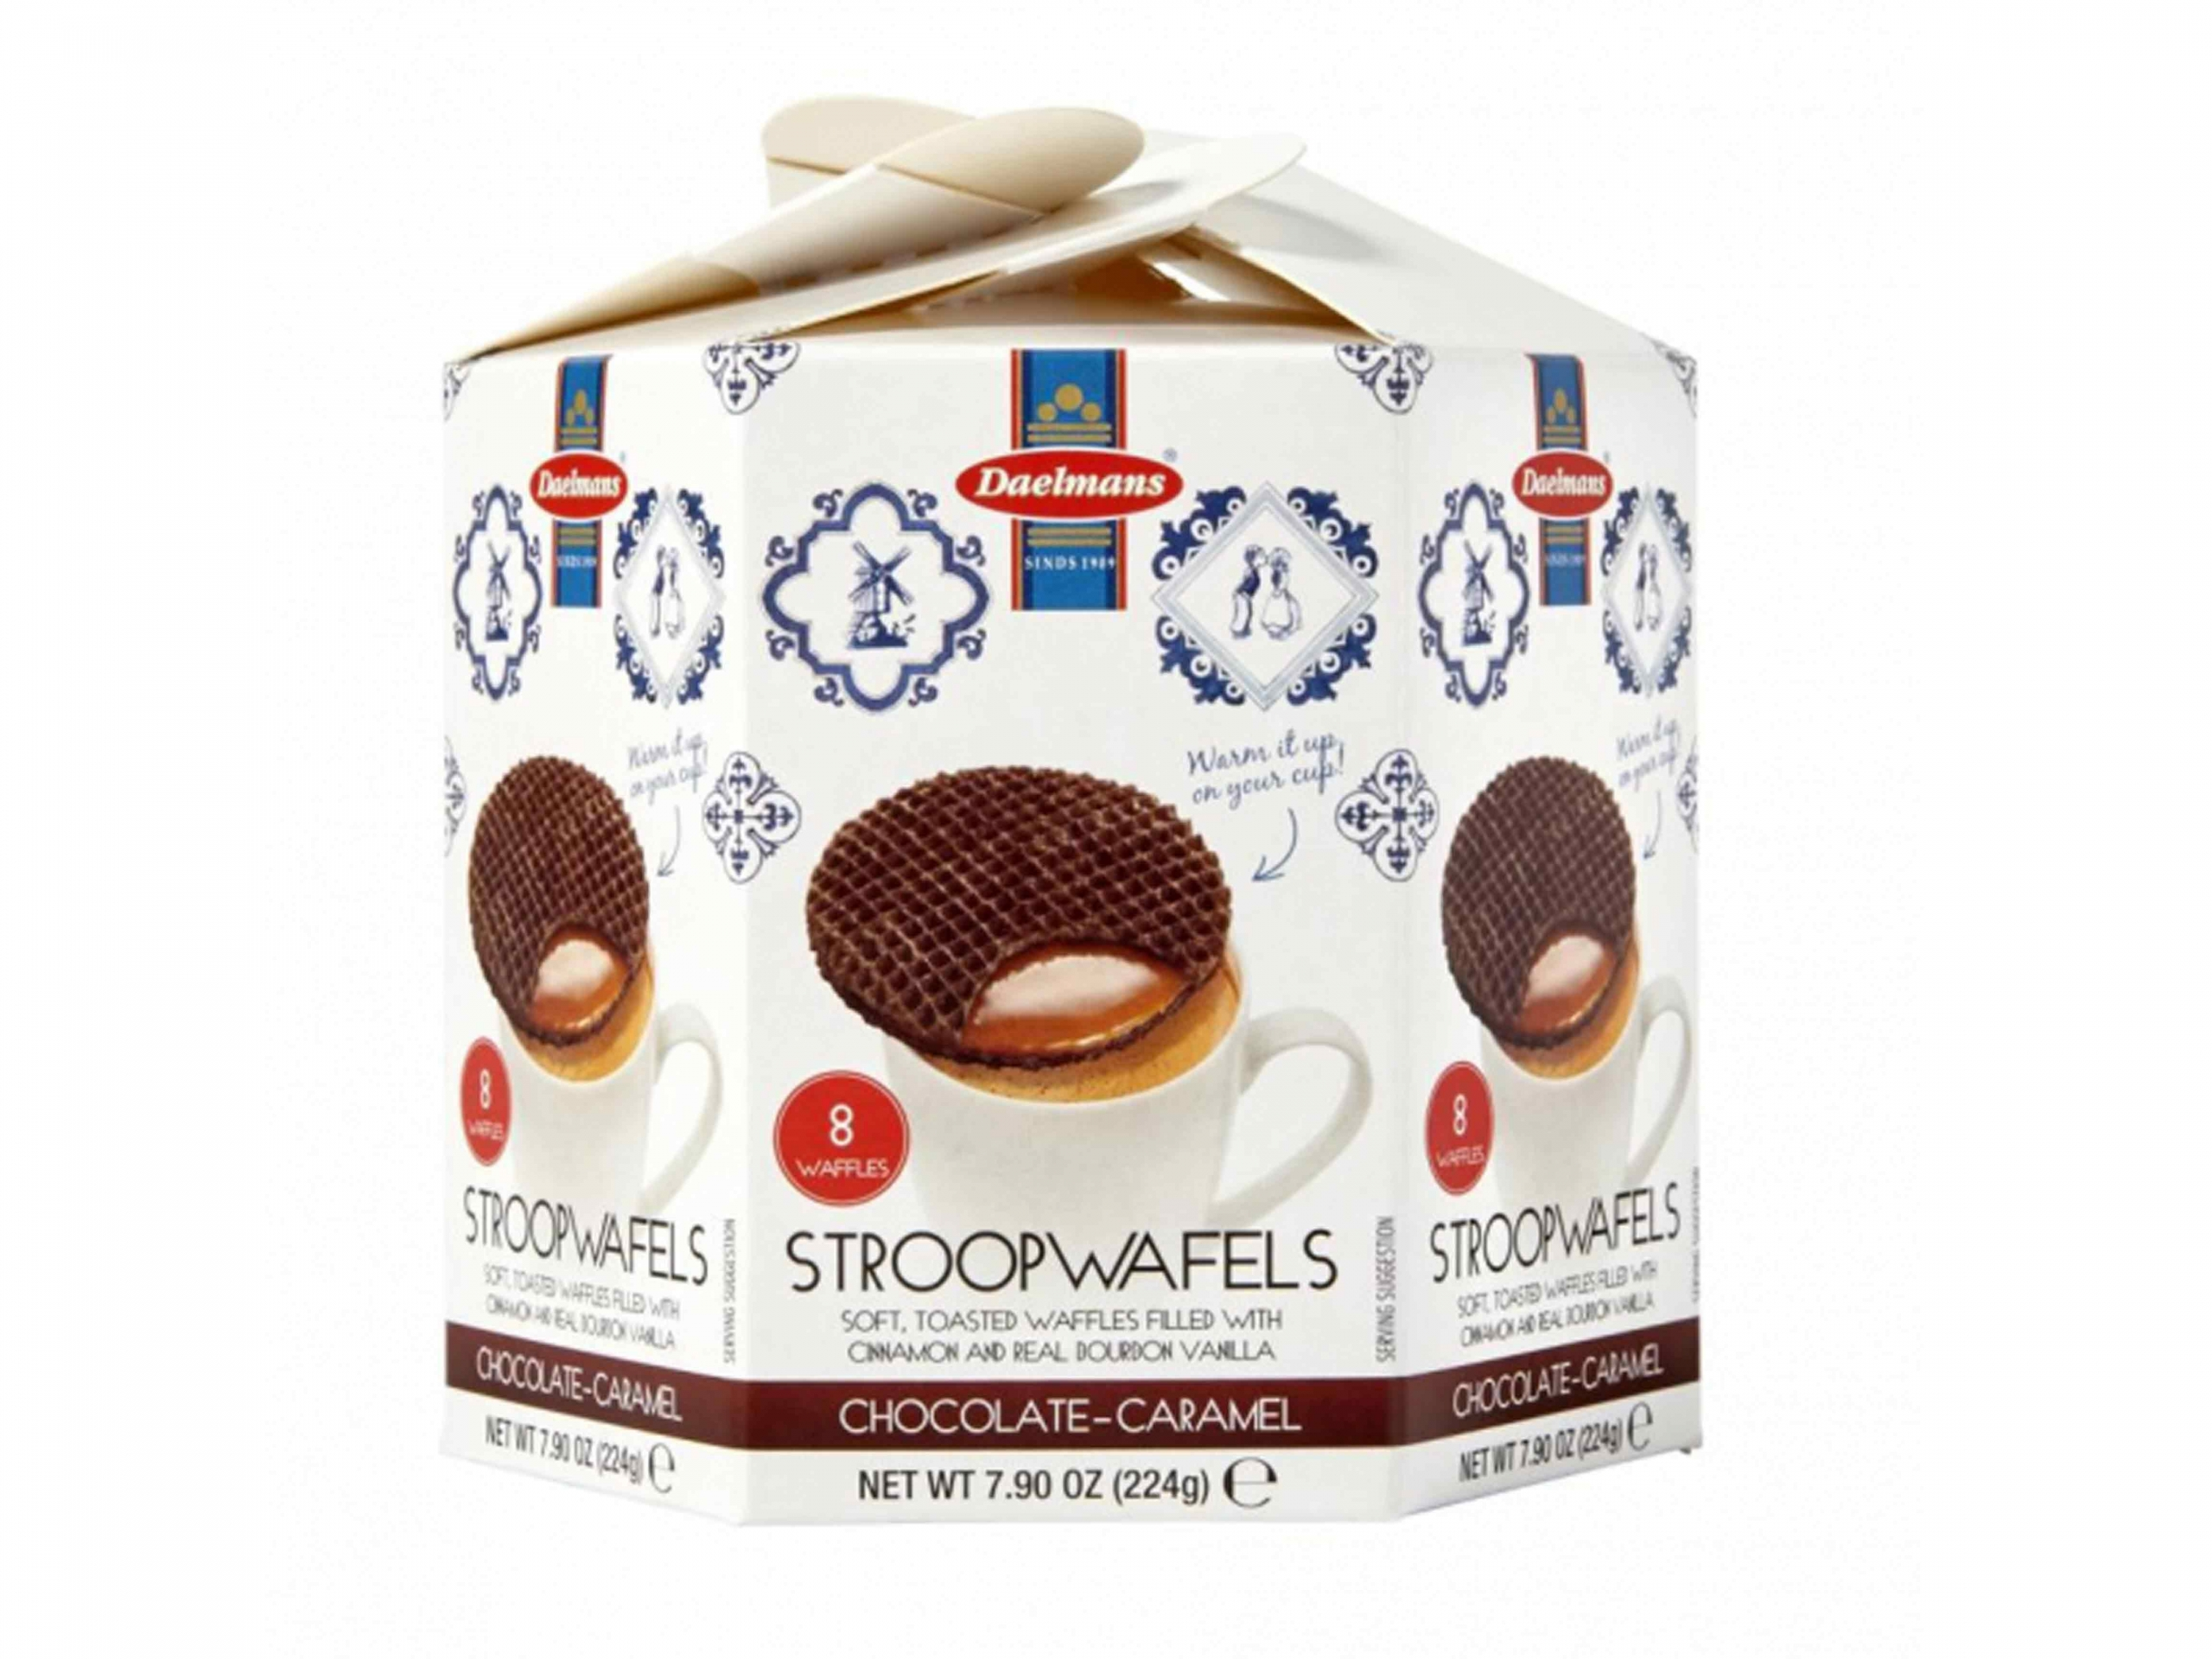 : Daelmans chocolate stroopwafels in hexa box